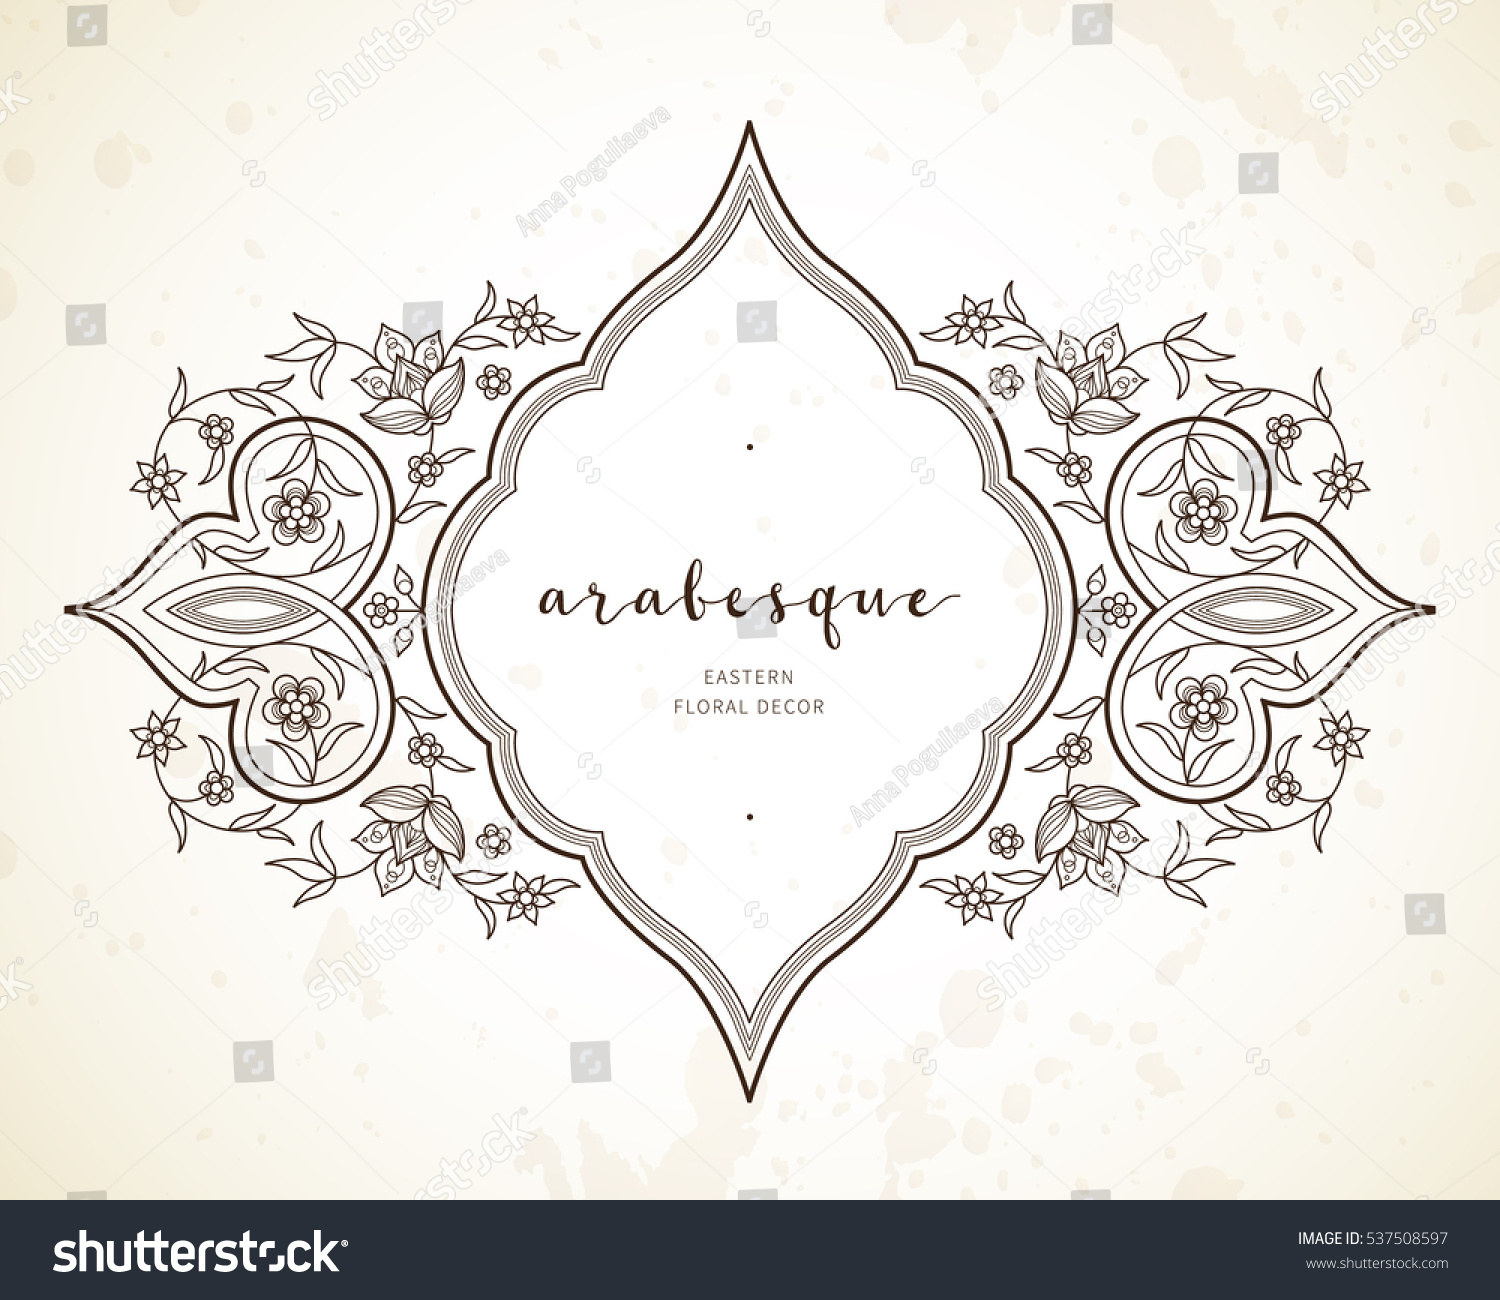 Online image photo editor shutterstock editor for Decor outline